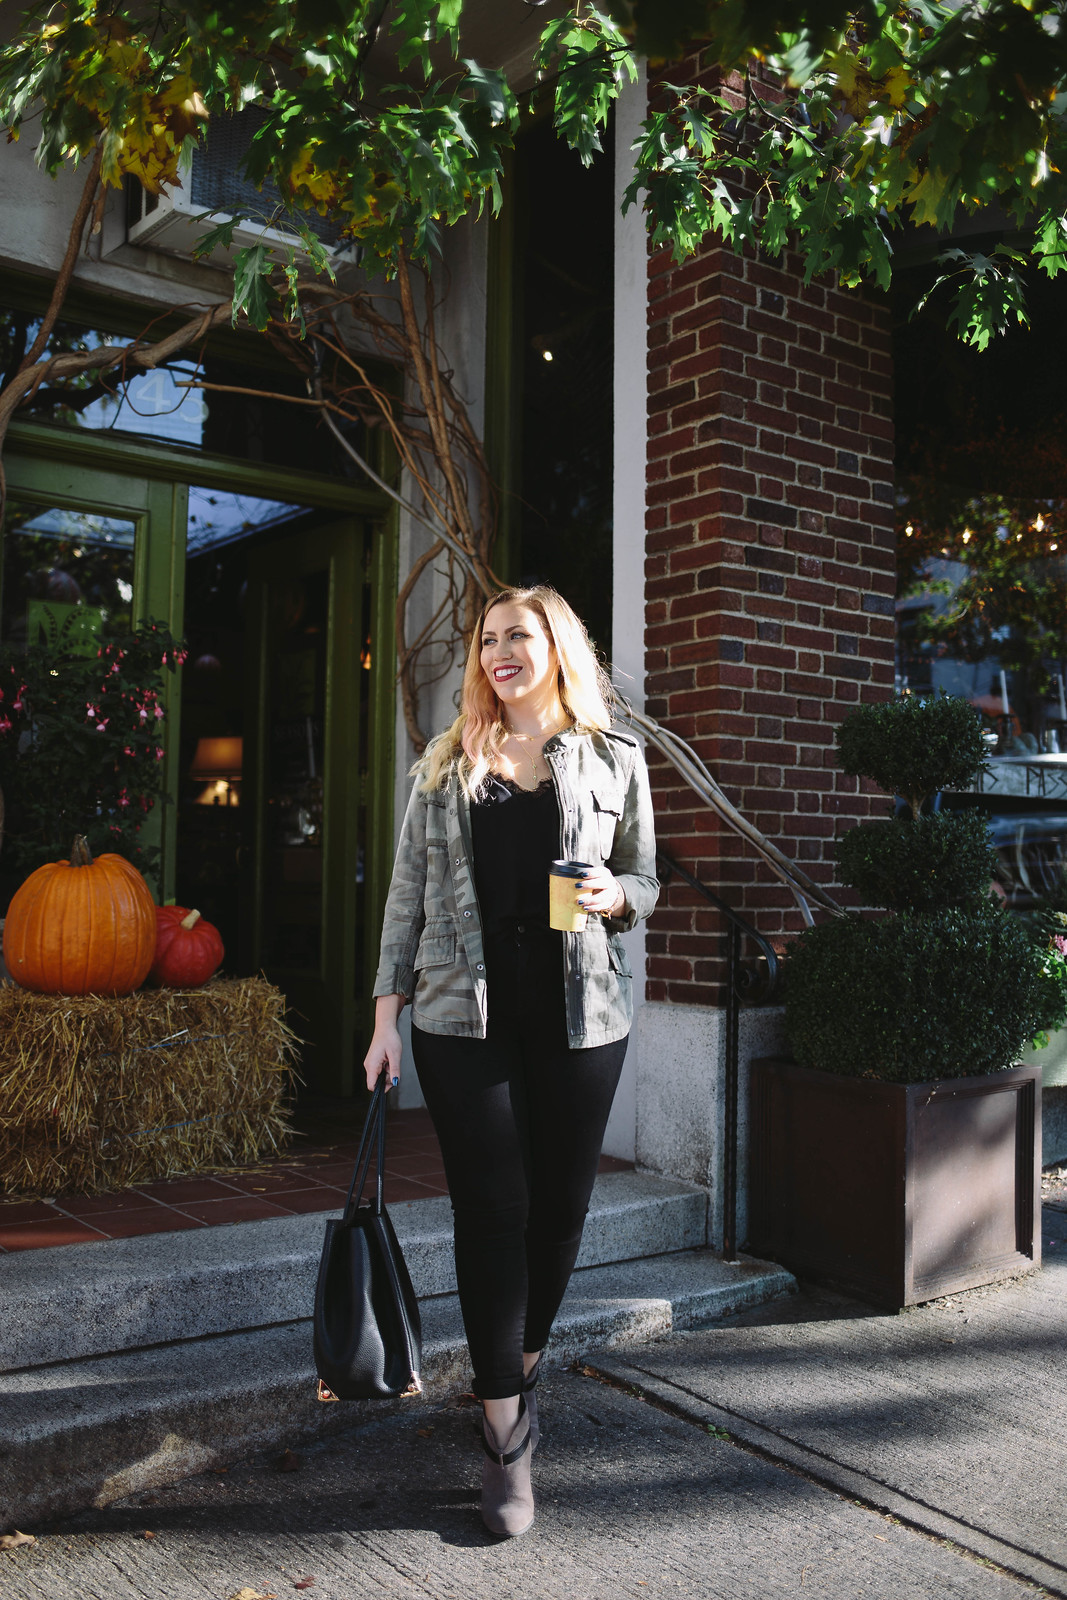 Casual Fall Outfit Camo Jacket Black Jeans Booties Coffee Shop Pumpkins Haystack